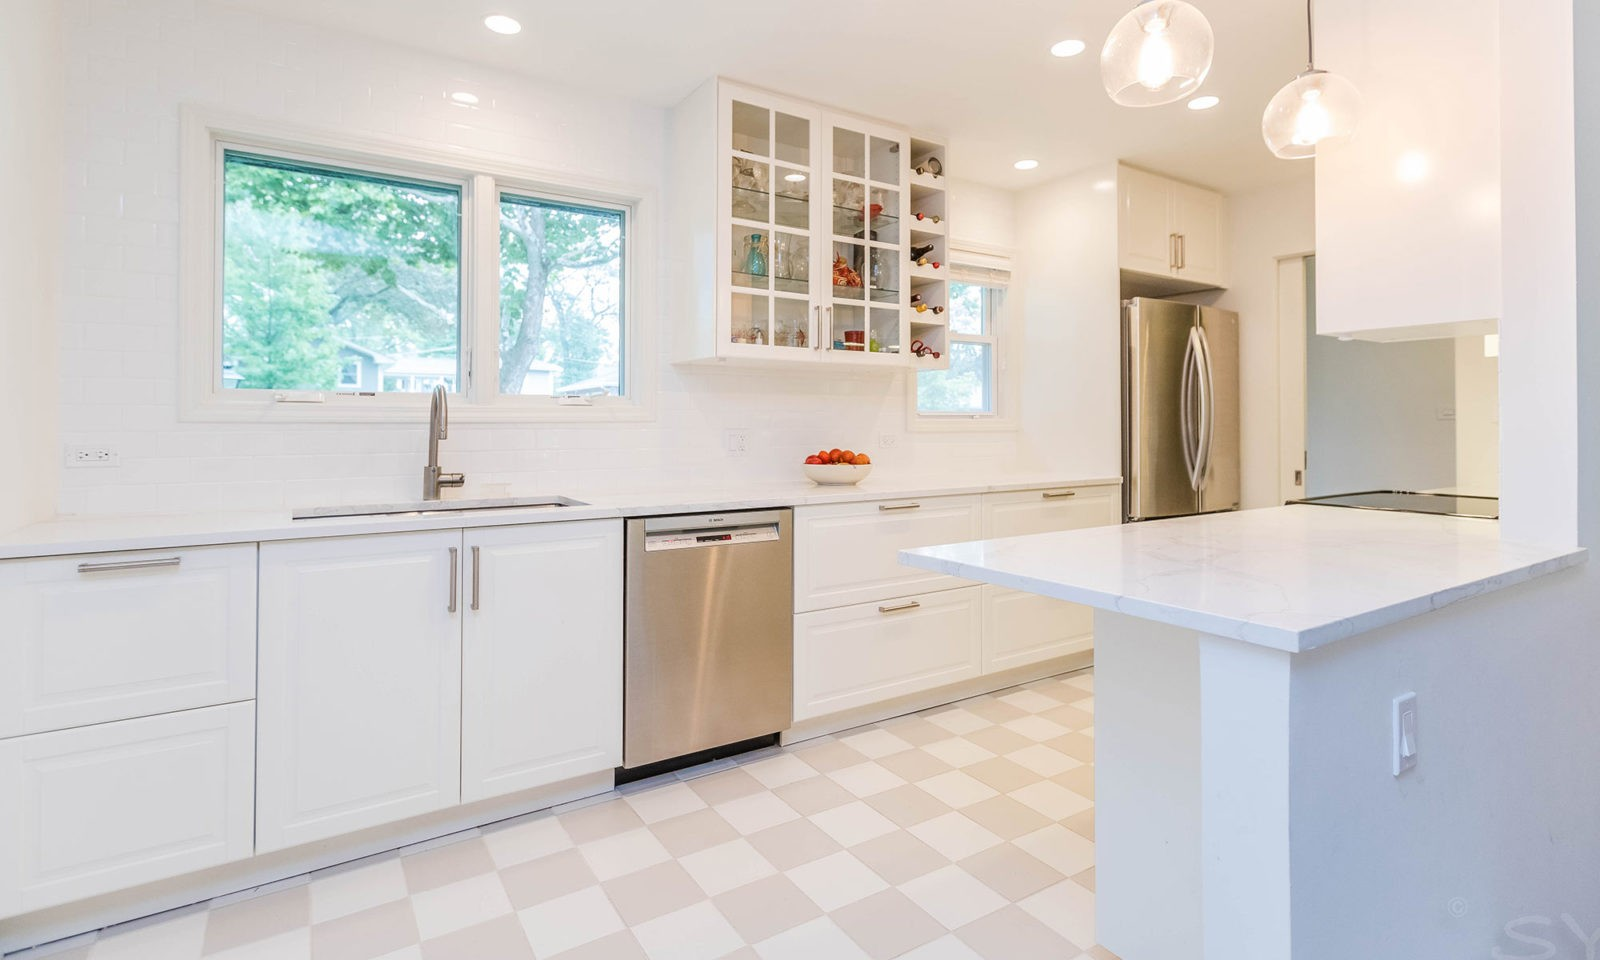 mid century modern ranch renovation and remodel view of white kitchen and sink under window